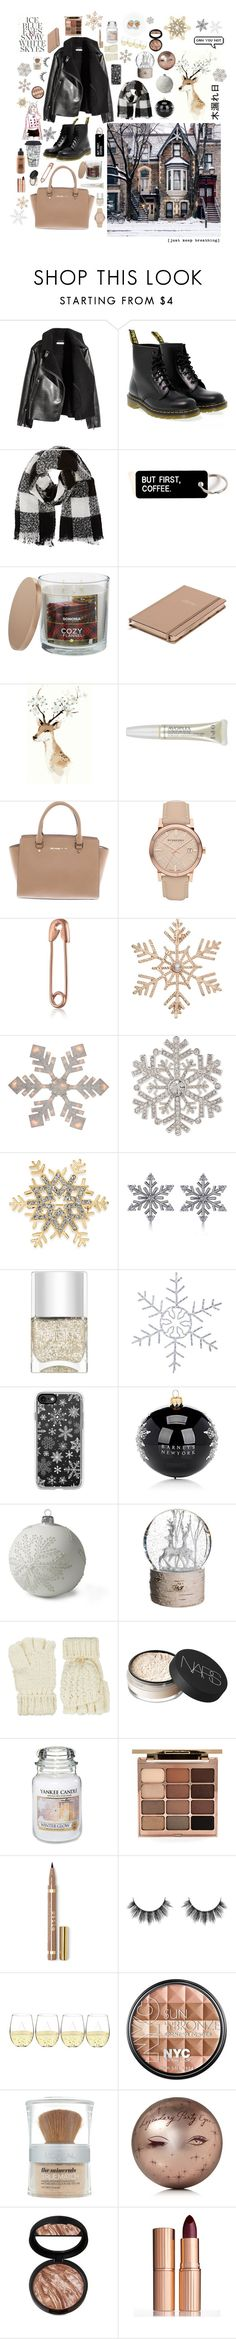 """""""Christmas is coming..."""" by c-b-bligaard ❤ liked on Polyvore featuring Dr. Martens, Barneys New York, SONOMA Goods for Life, Kate Spade, OPI, Michael Kors, Burberry, John Lewis, Northlight Homestore and Anne Klein"""